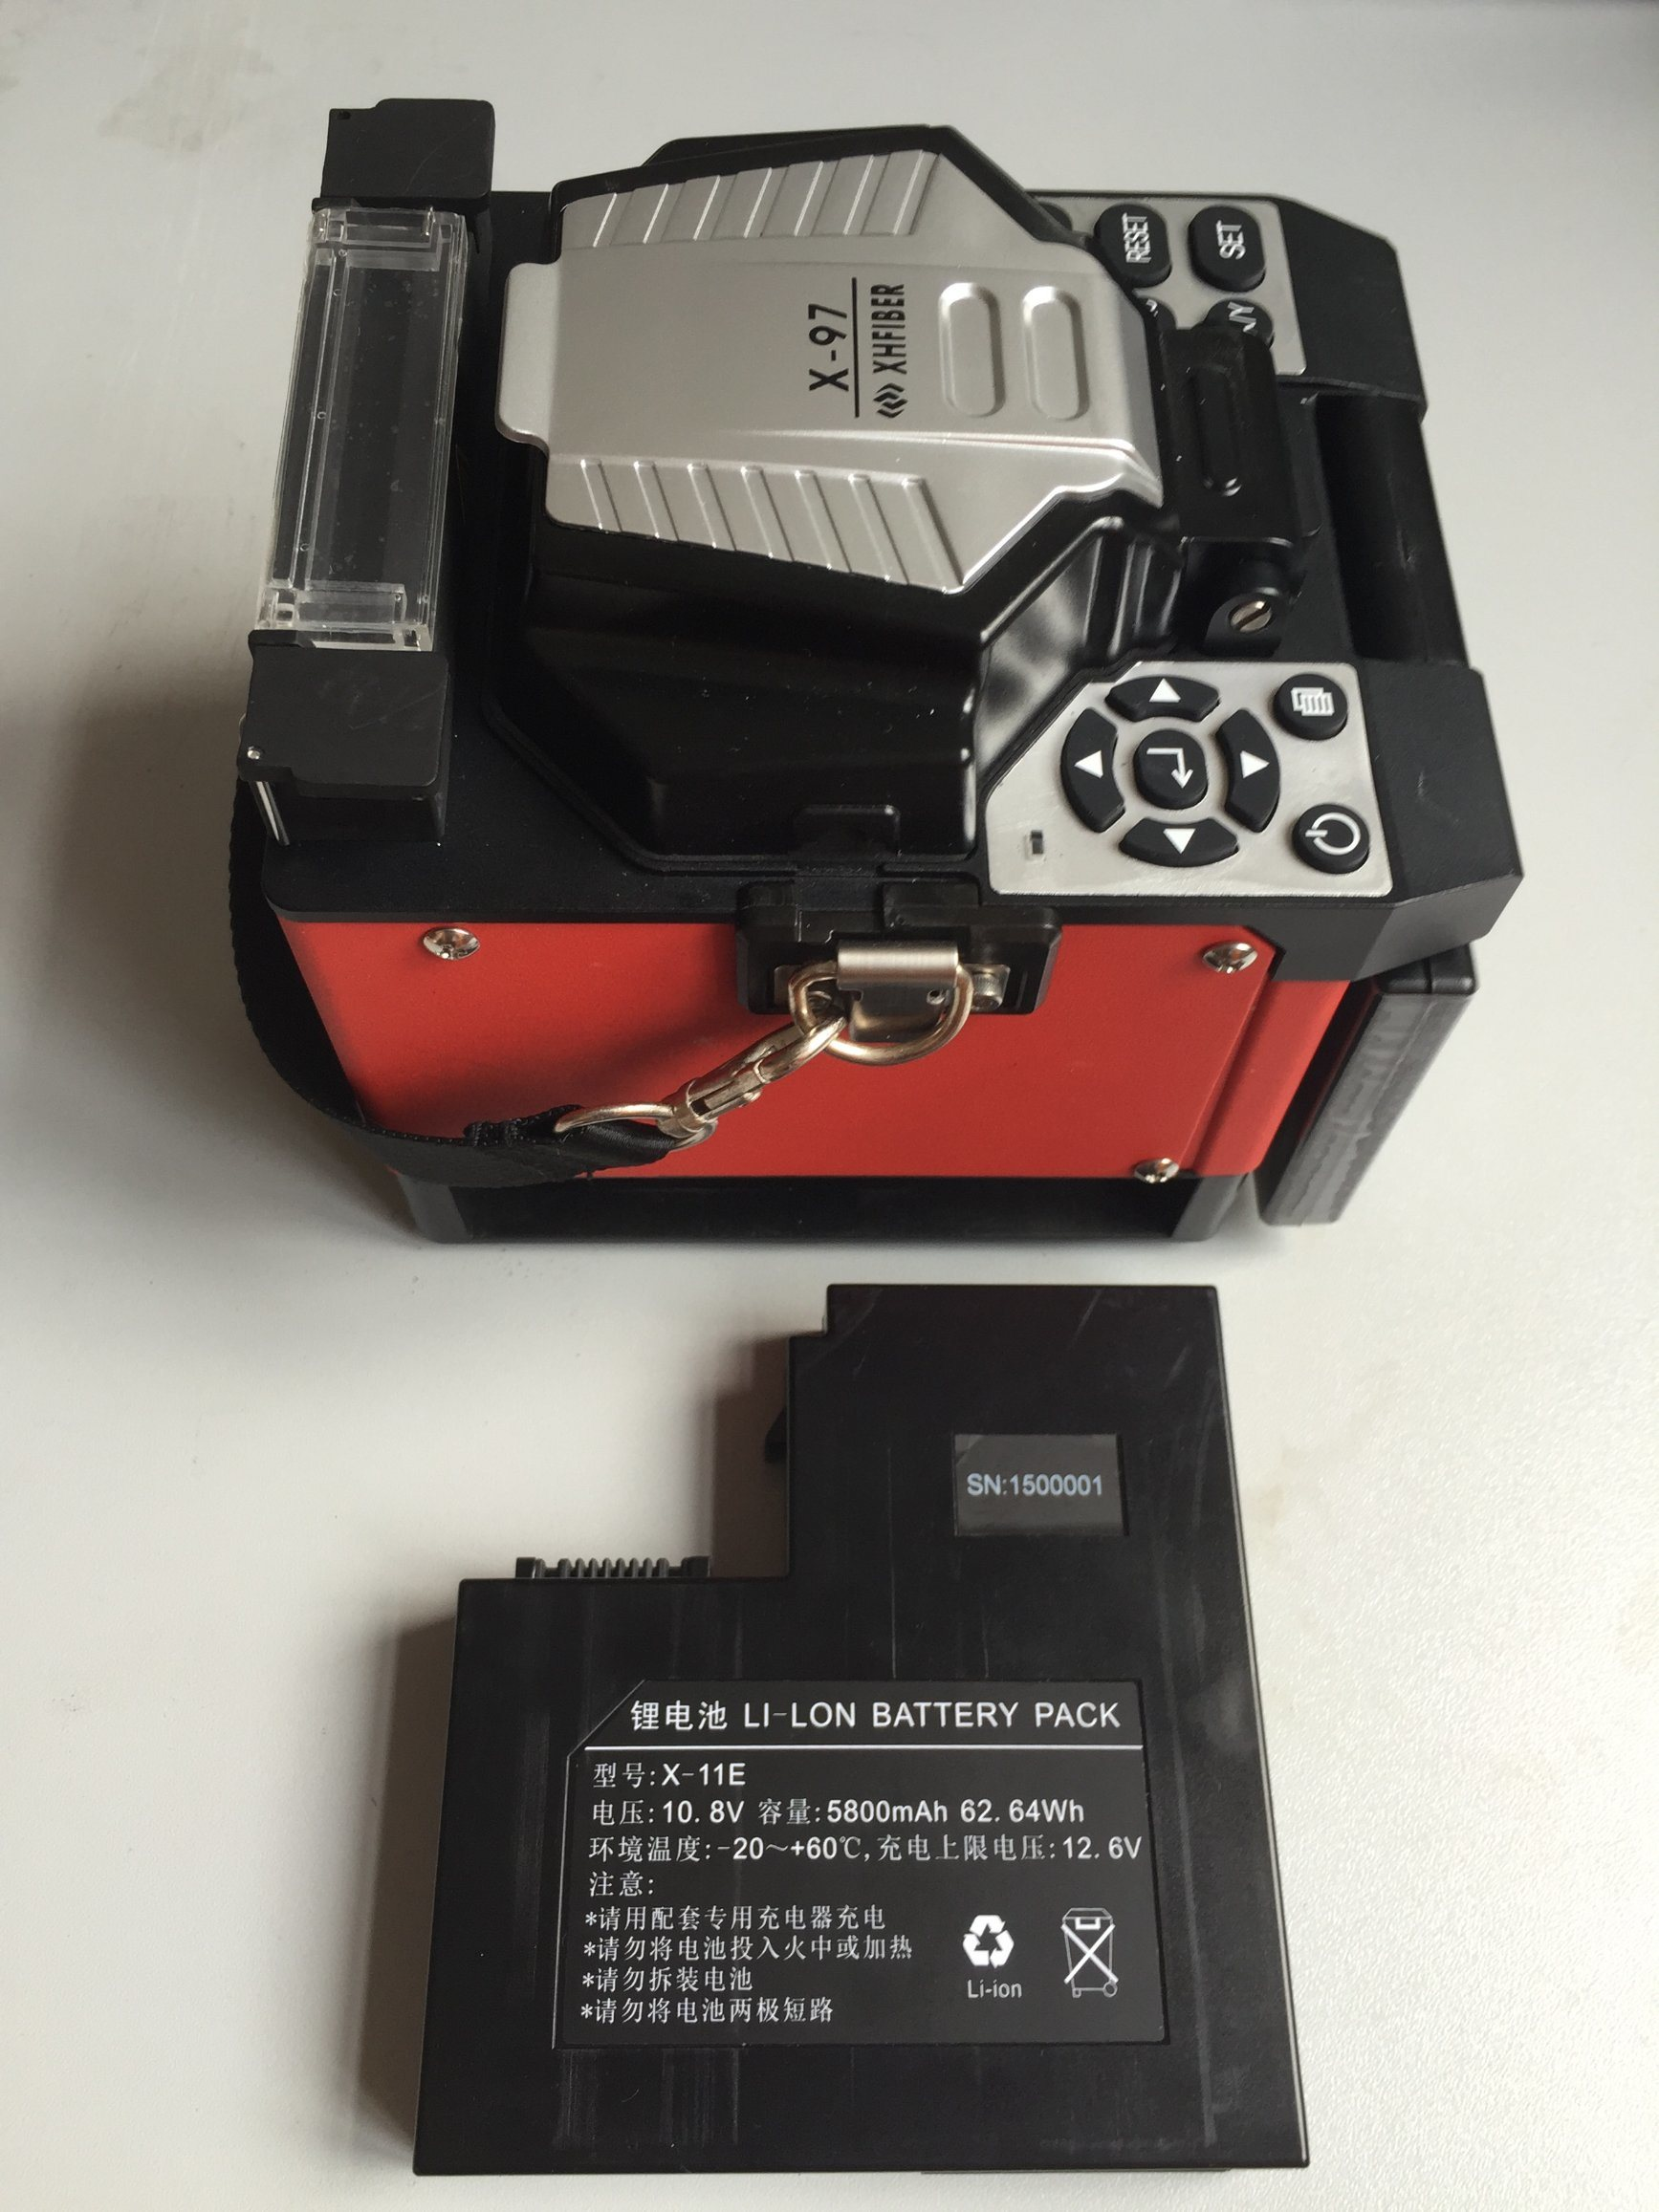 Shinho X-97 Fiber Optic Fusion Splicer Kit